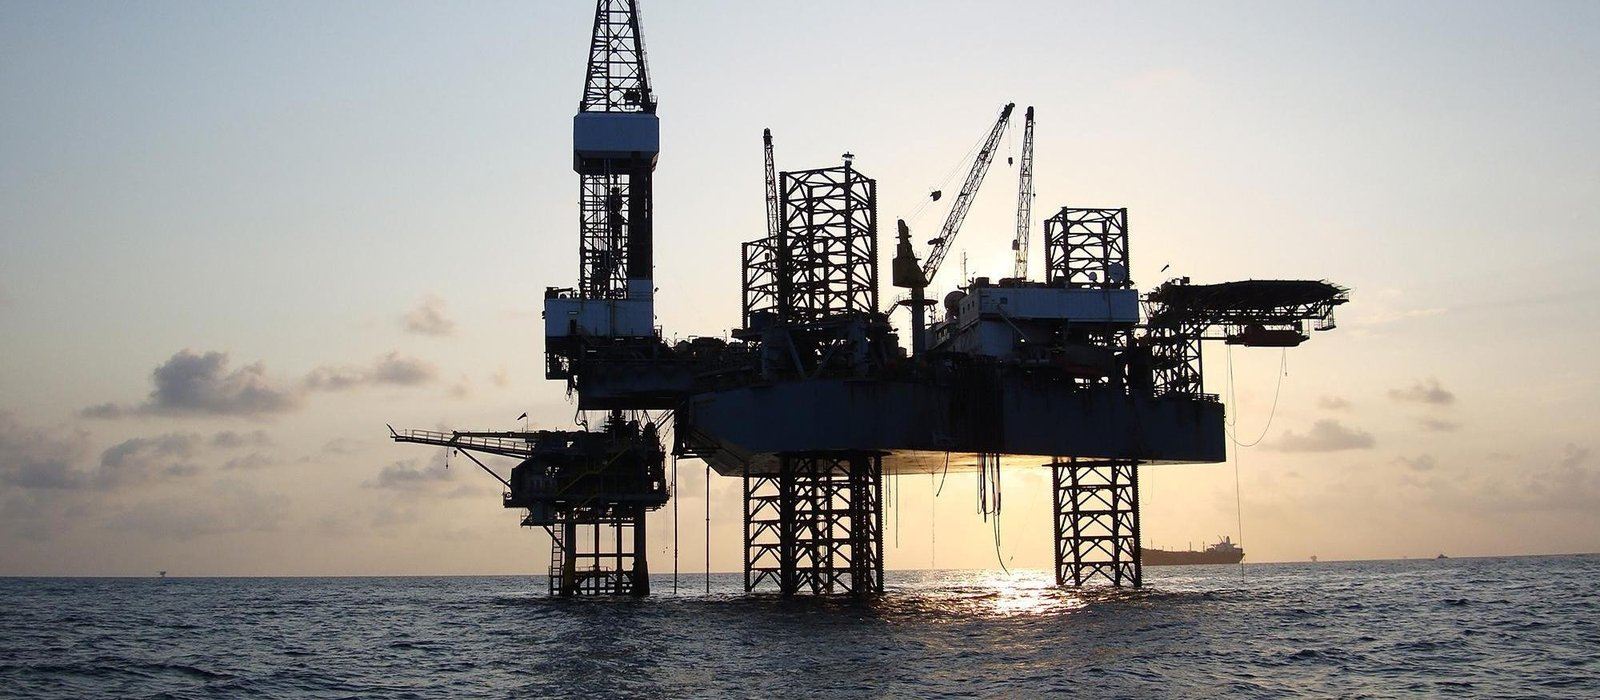 Oil & gas off shore